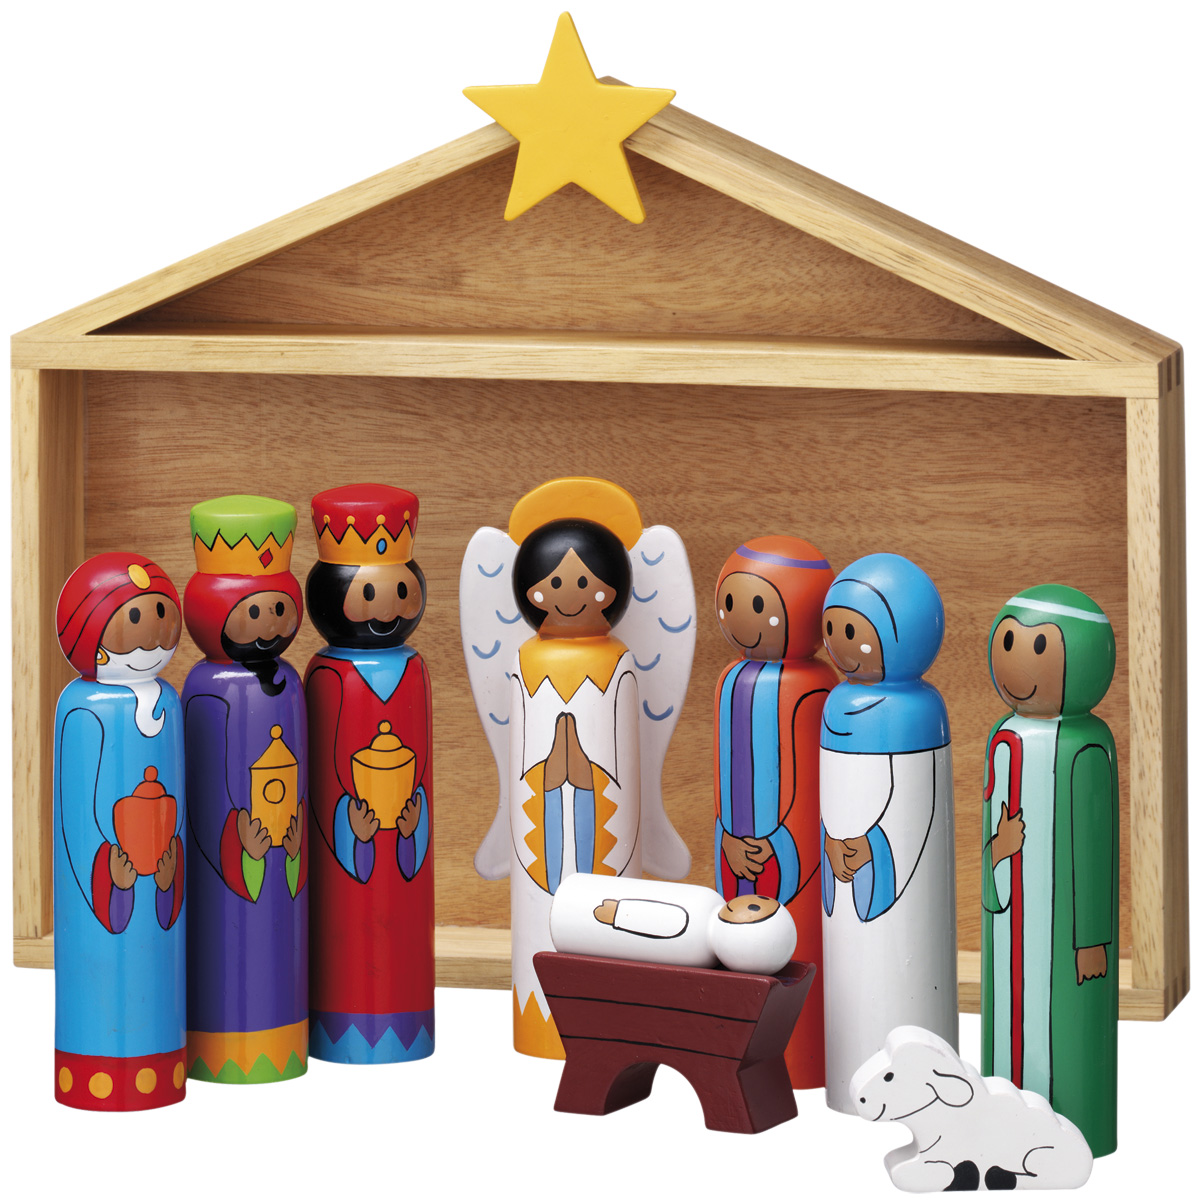 Wooden Nativity Set Lanka Kade Traditional Wooden Toys